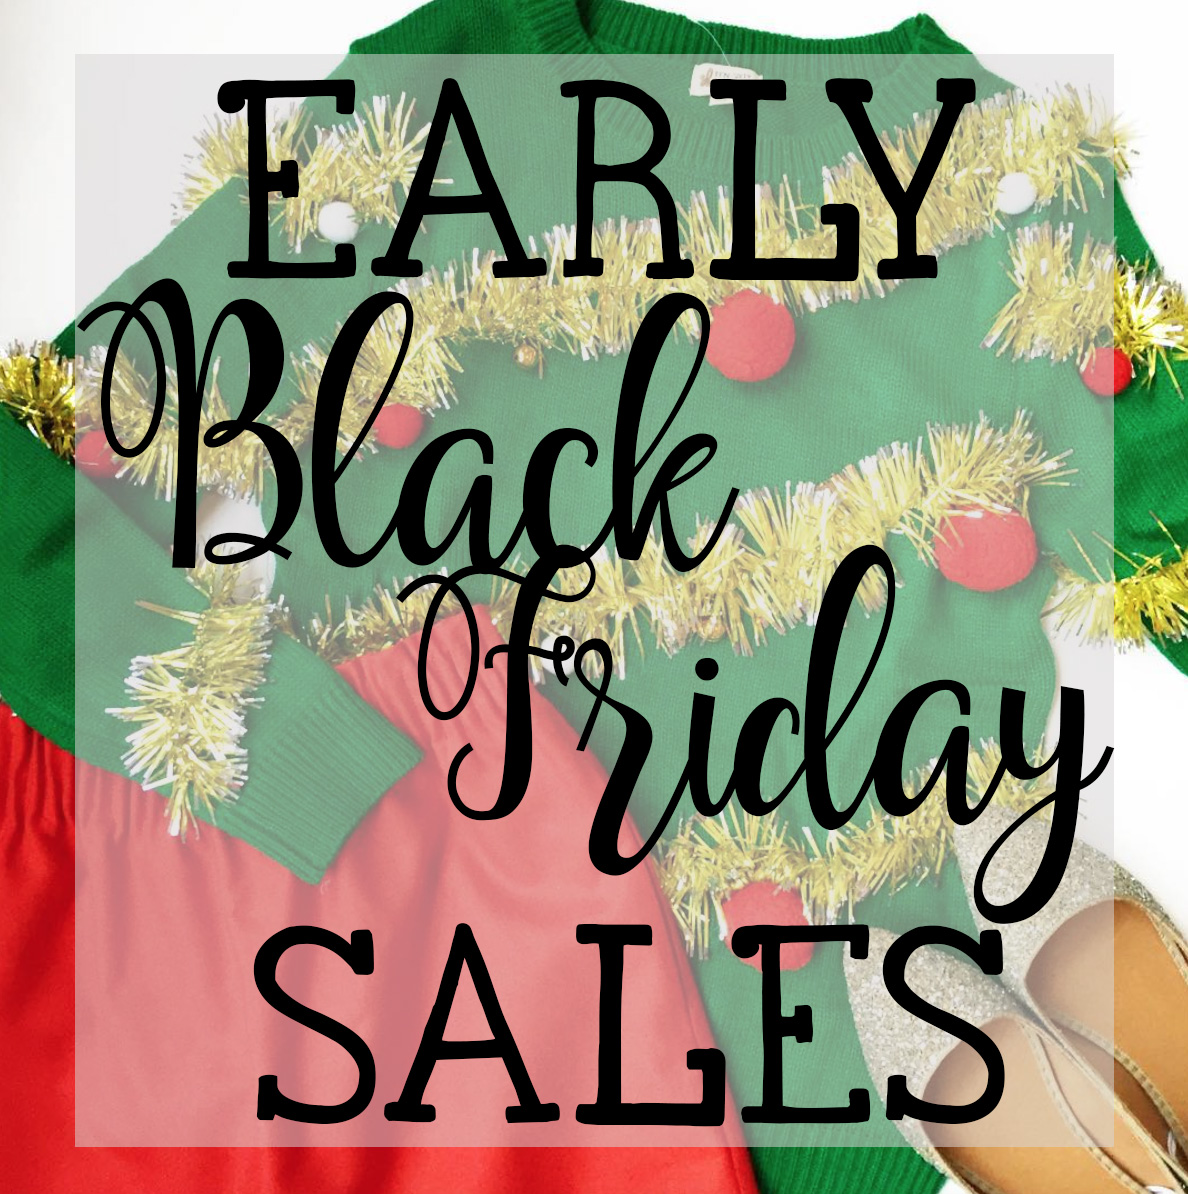 c096a04d3cd Early Black Friday Sales